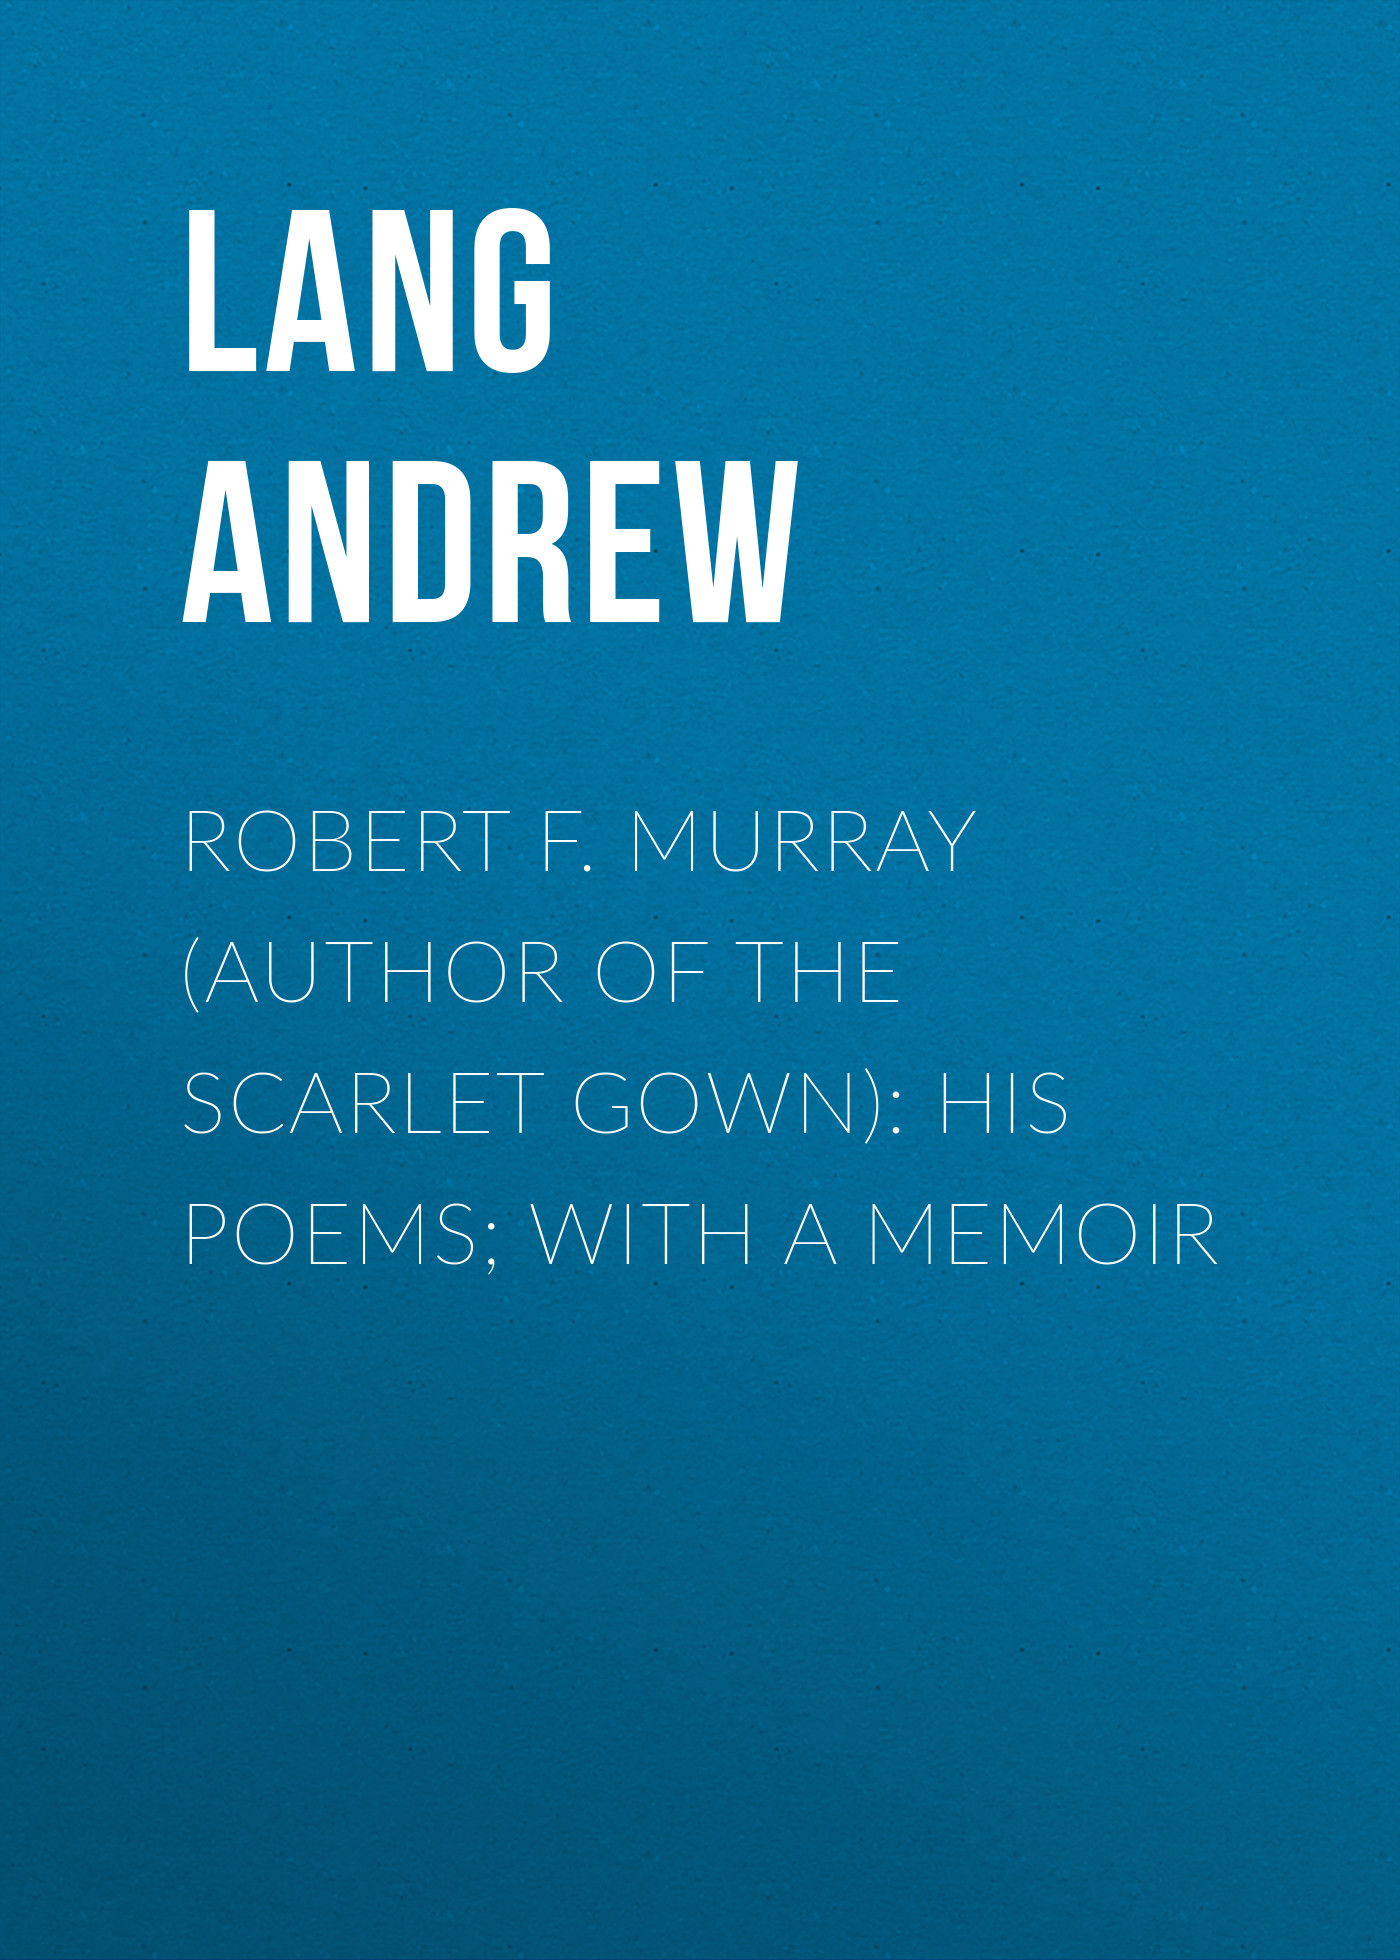 Lang Andrew Robert F. Murray (Author of the Scarlet Gown): His Poems; with a Memoir подвесная люстра базель cl407132 citilux 1142526 page 6